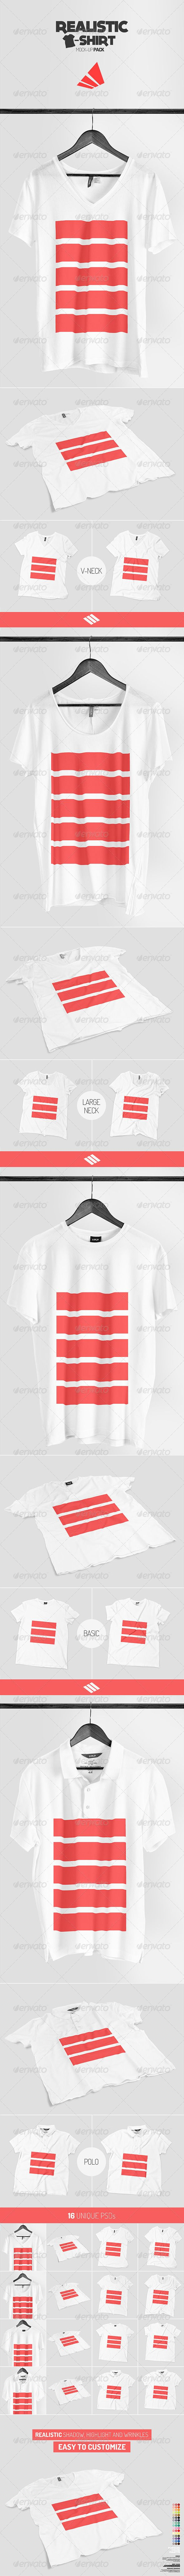 Realistic T-shirt Mock-up Pack  #t-shirt #v-neck • Available here → http://graphicriver.net/item/realistic-tshirt-mockup-pack/7325557?s_rank=147&ref=pxcr